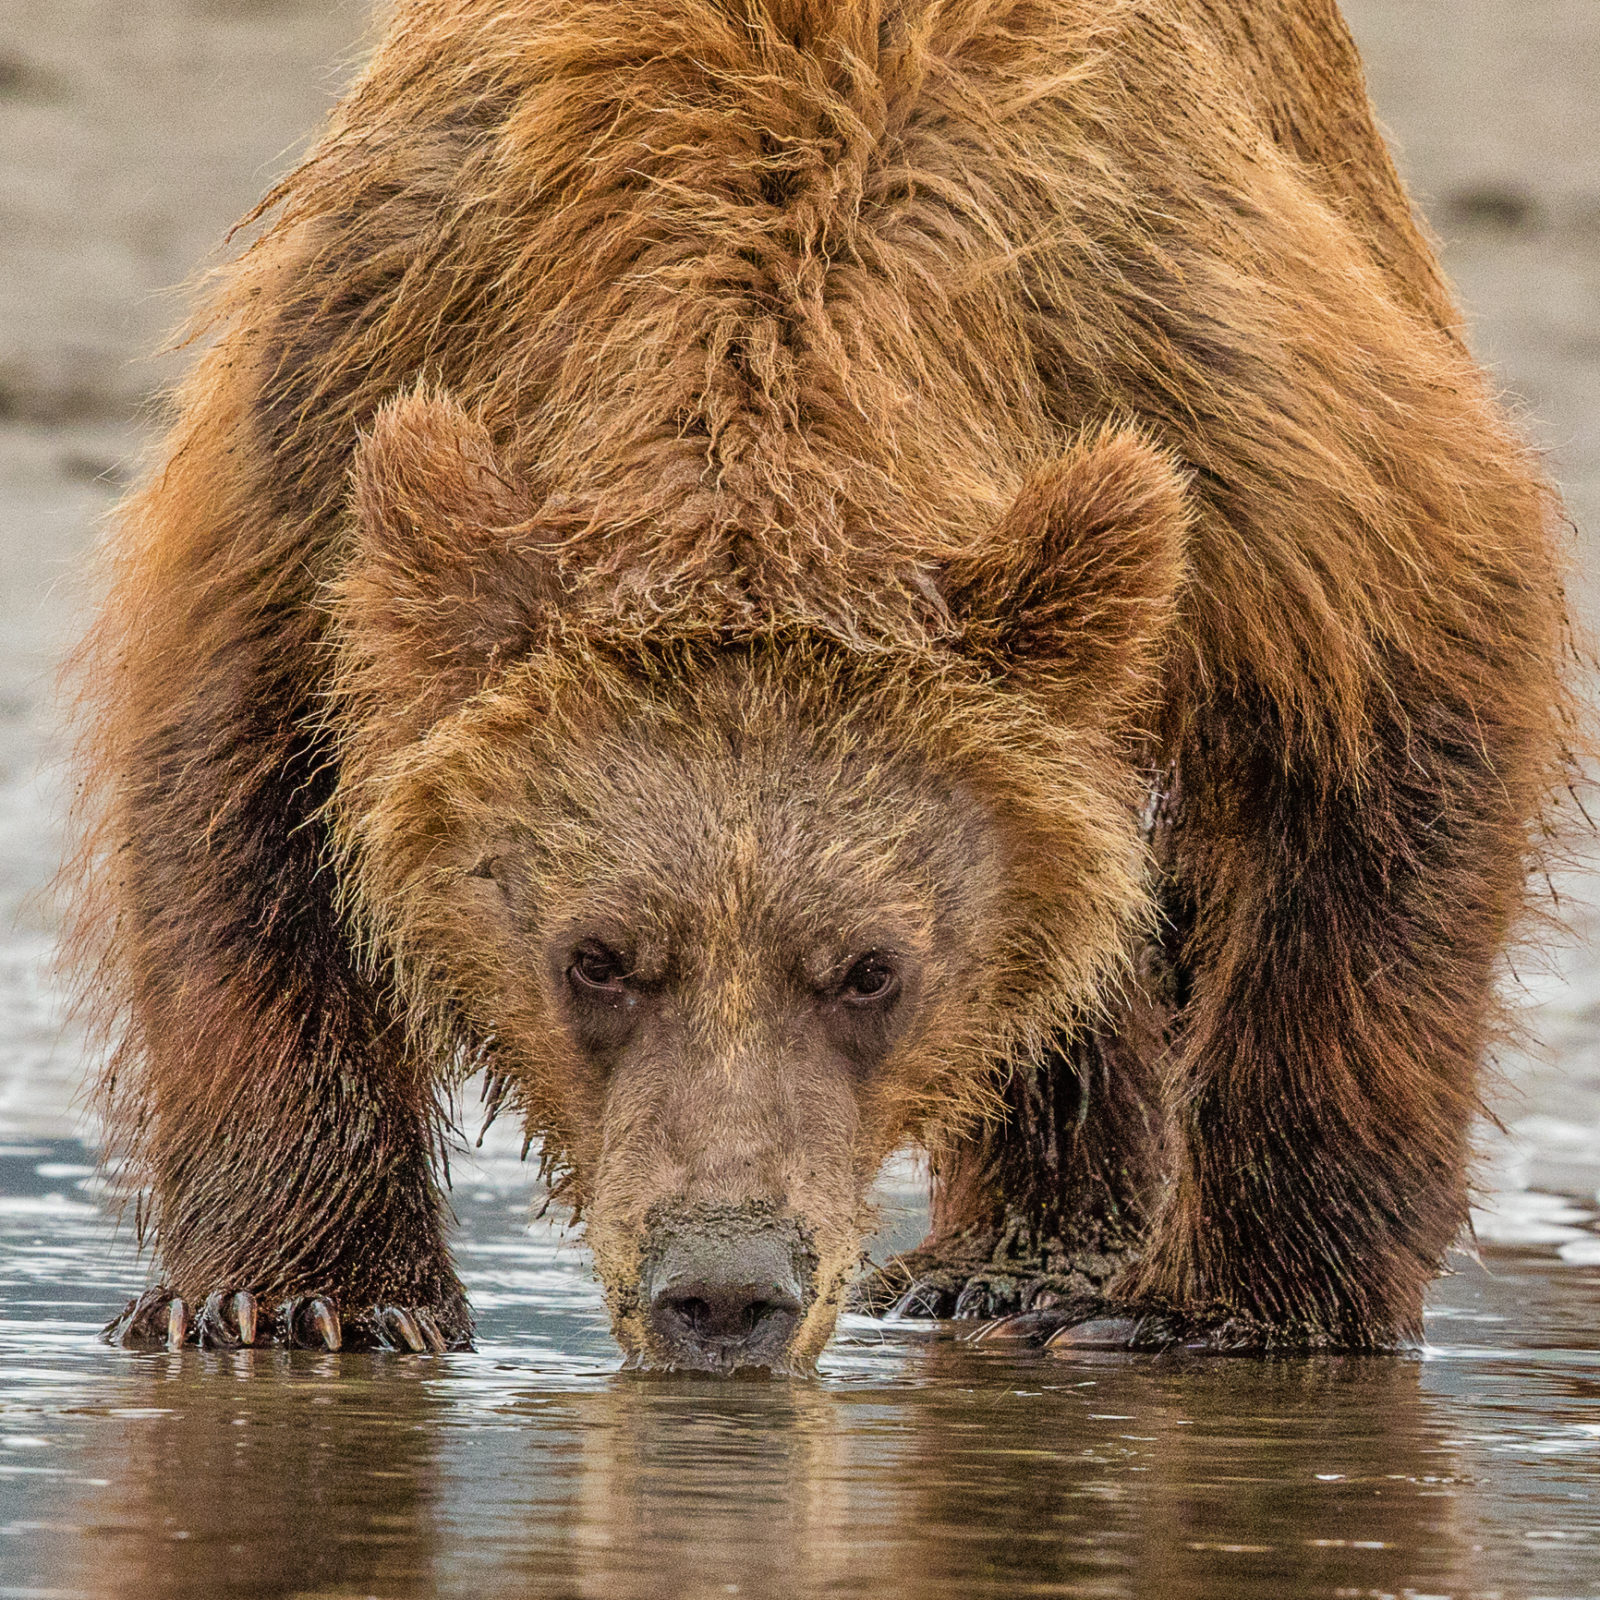 Grizzly Stare Down